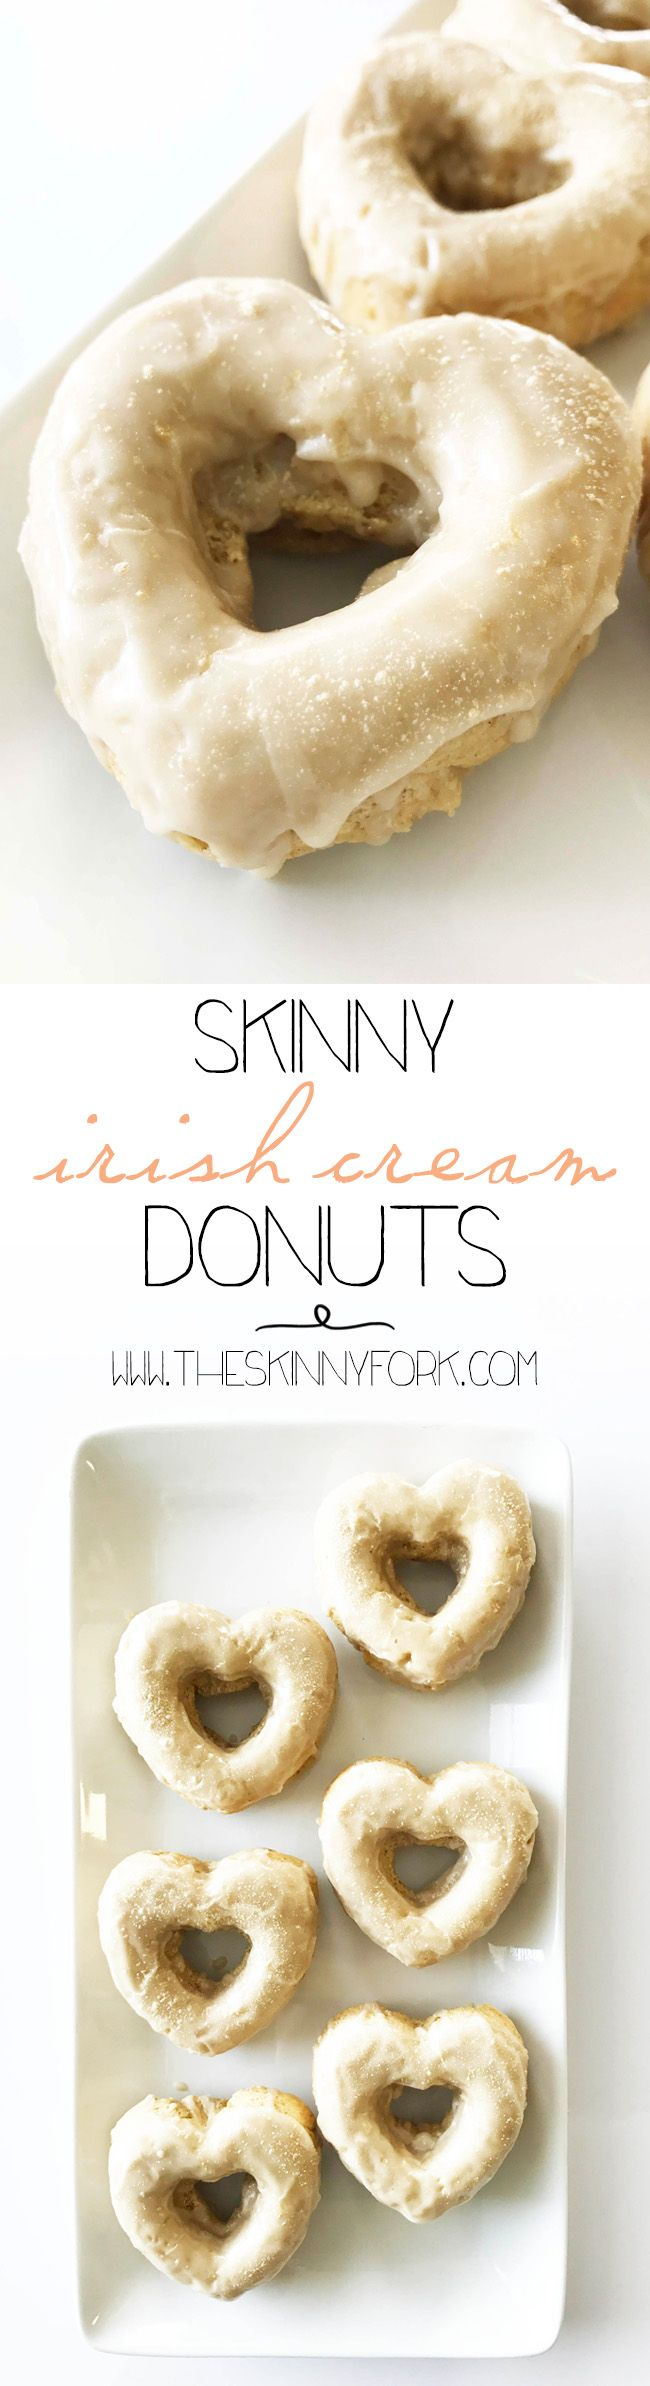 It's Thursday! The week is so close to being over. Celebrate and get ready for St. Patrick's Day with these Skinny Irish Cream Donuts! Cheers, y'all!  These donuts are perfectly baked and lightened up while still giving you that little kick of Irish cream liqueur. TheSkinnyFork.com | Skinny & Healthy Recipes